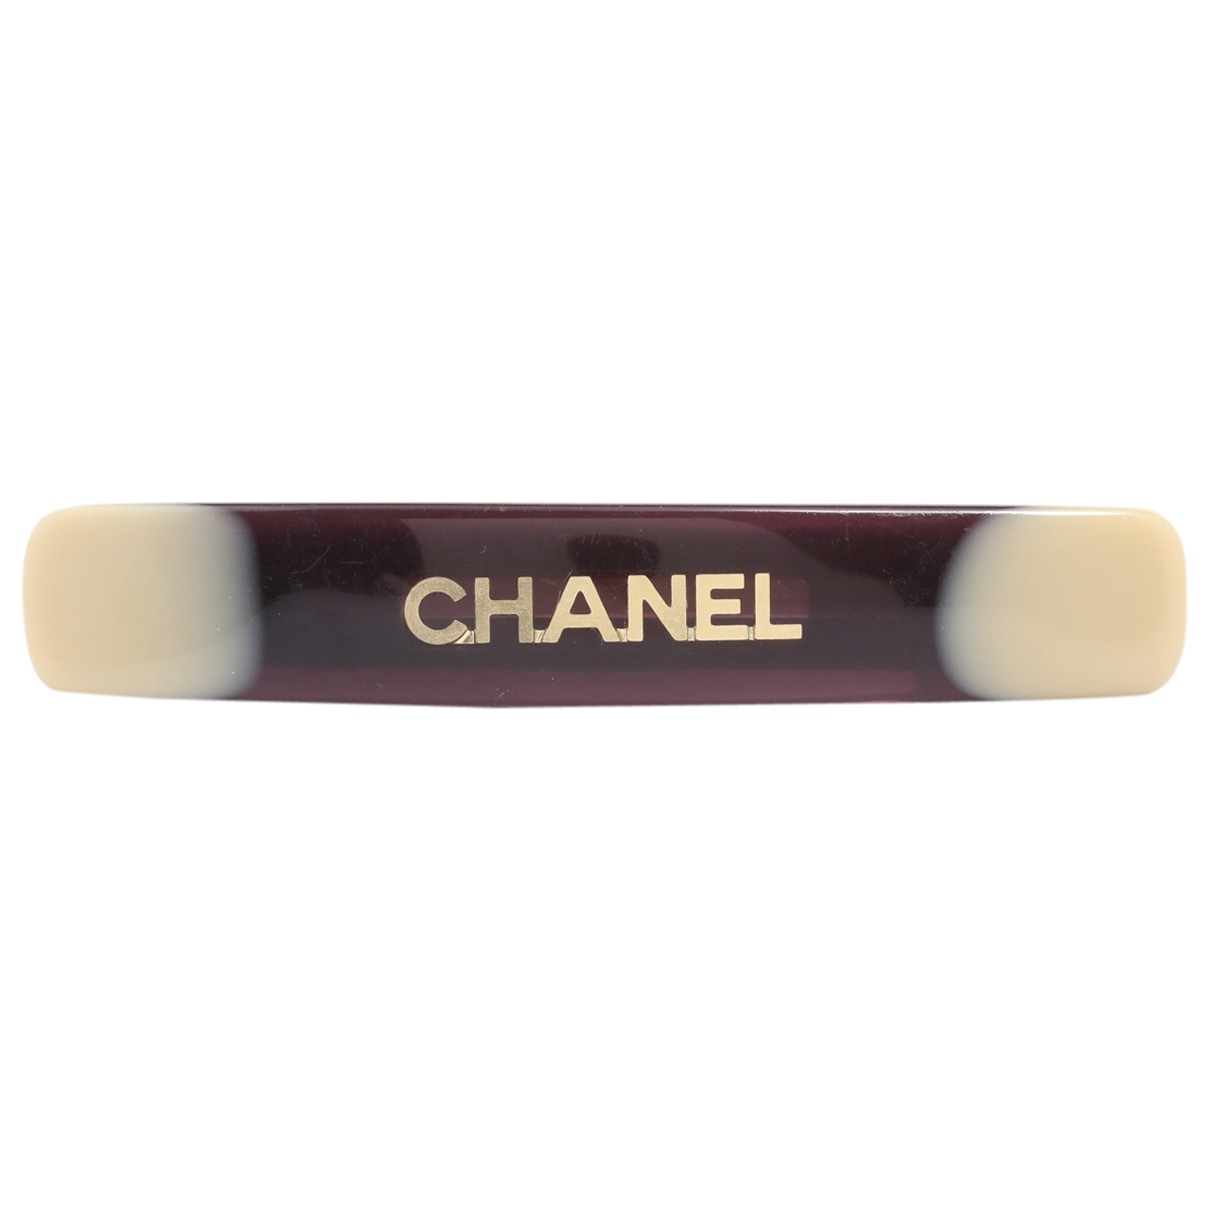 Chanel \N Haarschmuck in  Braun Metall